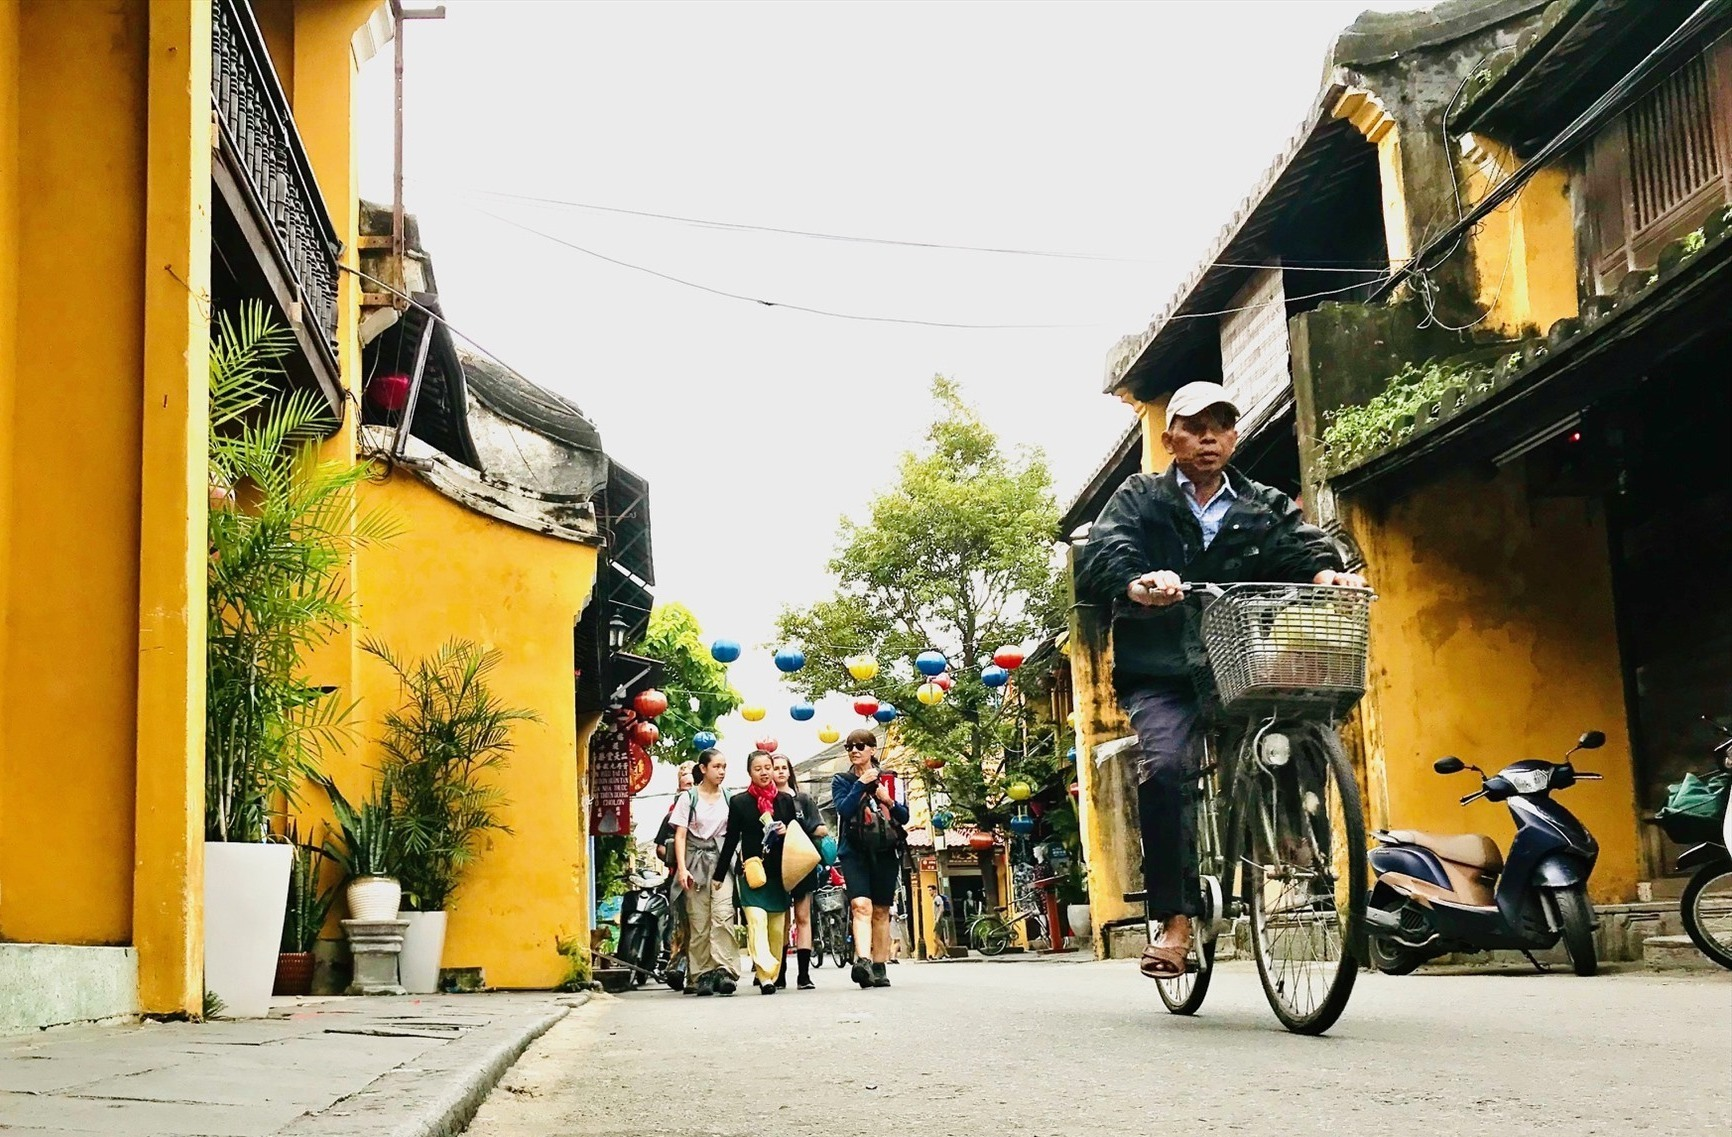 Visitors to Hoi An (Quang Nam province)